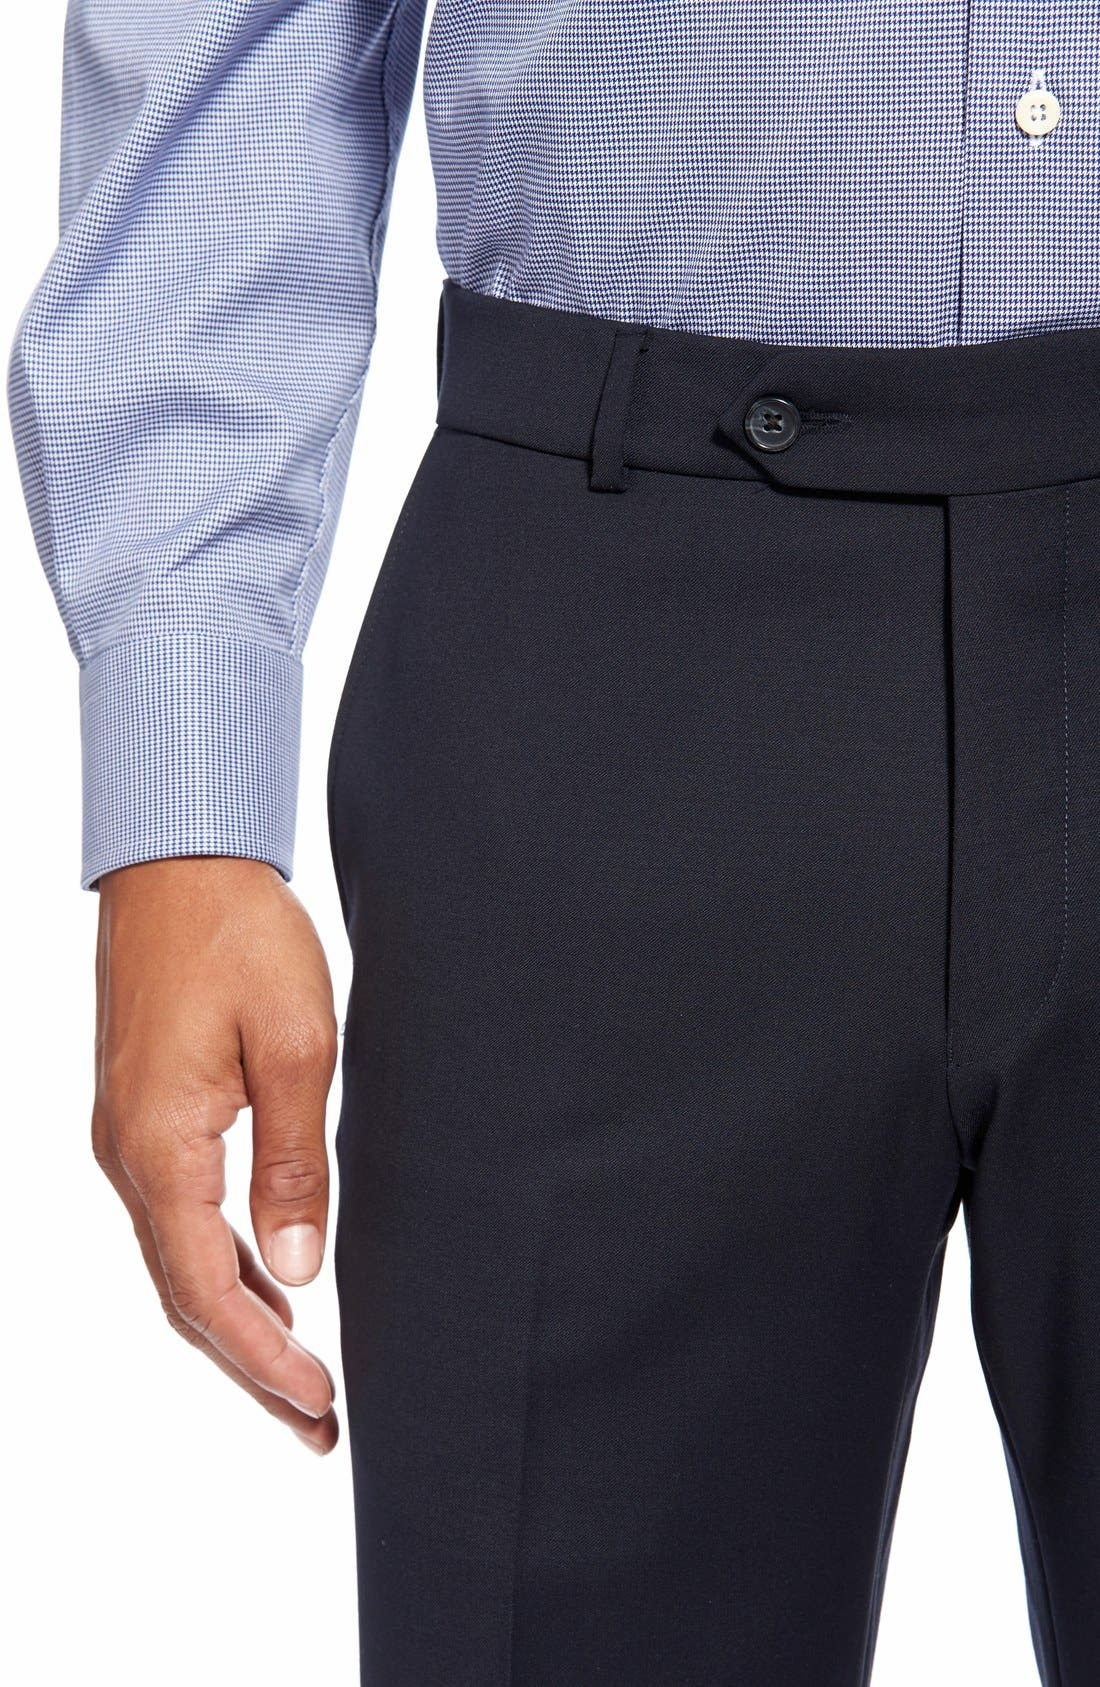 Flat Front Solid Wool Trousers,                             Alternate thumbnail 5, color,                             Navy